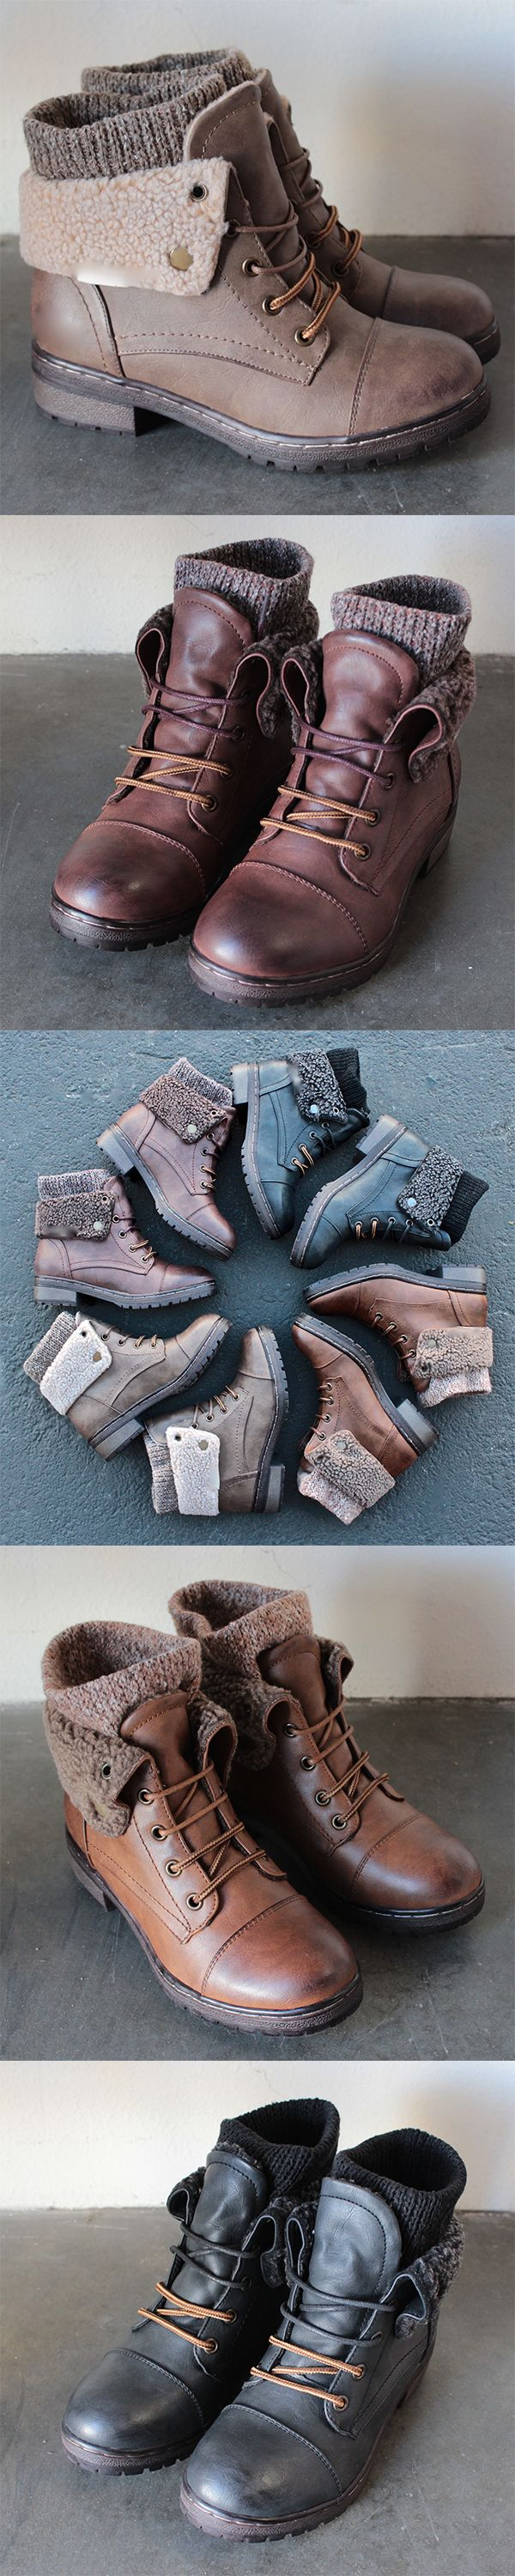 best 25+ winter shoes ideas on pinterest | fall winter shoes